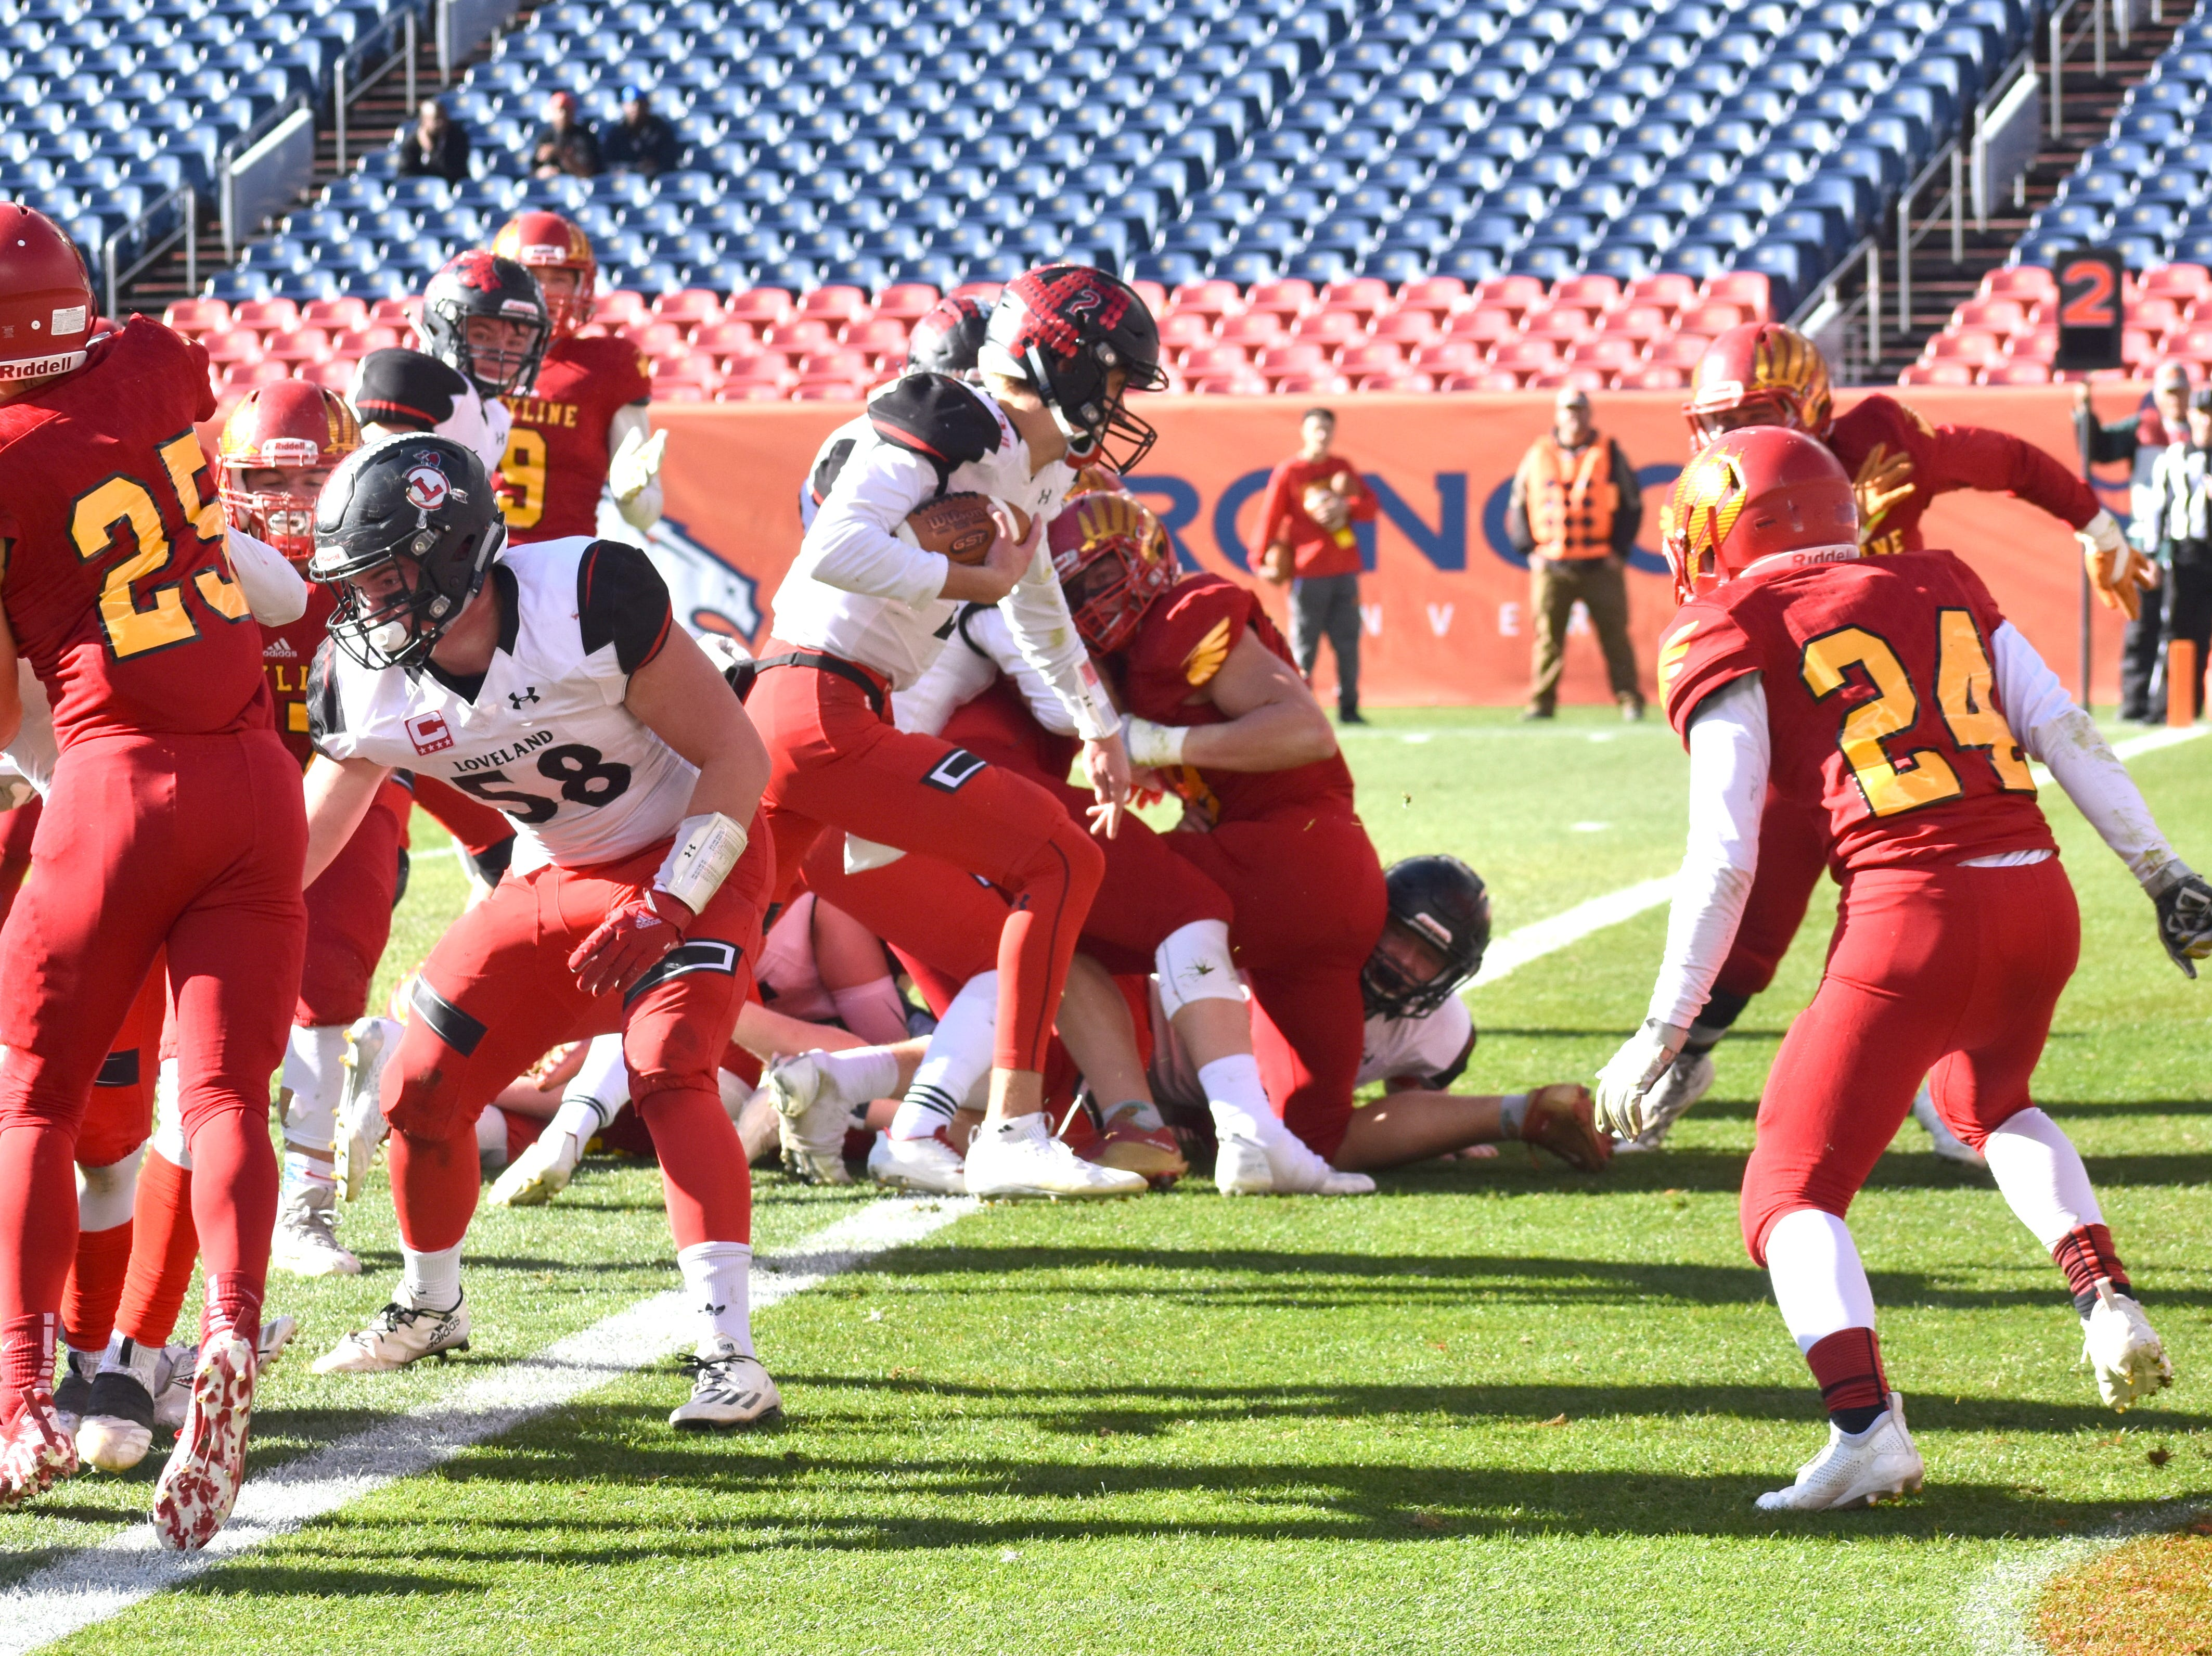 Loveland quarterback Ryan Kinney runs into the end zone for one of his five touchdowns during Saturday's Class 4A state championship game at Broncos Stadium at Mile High in Denver.